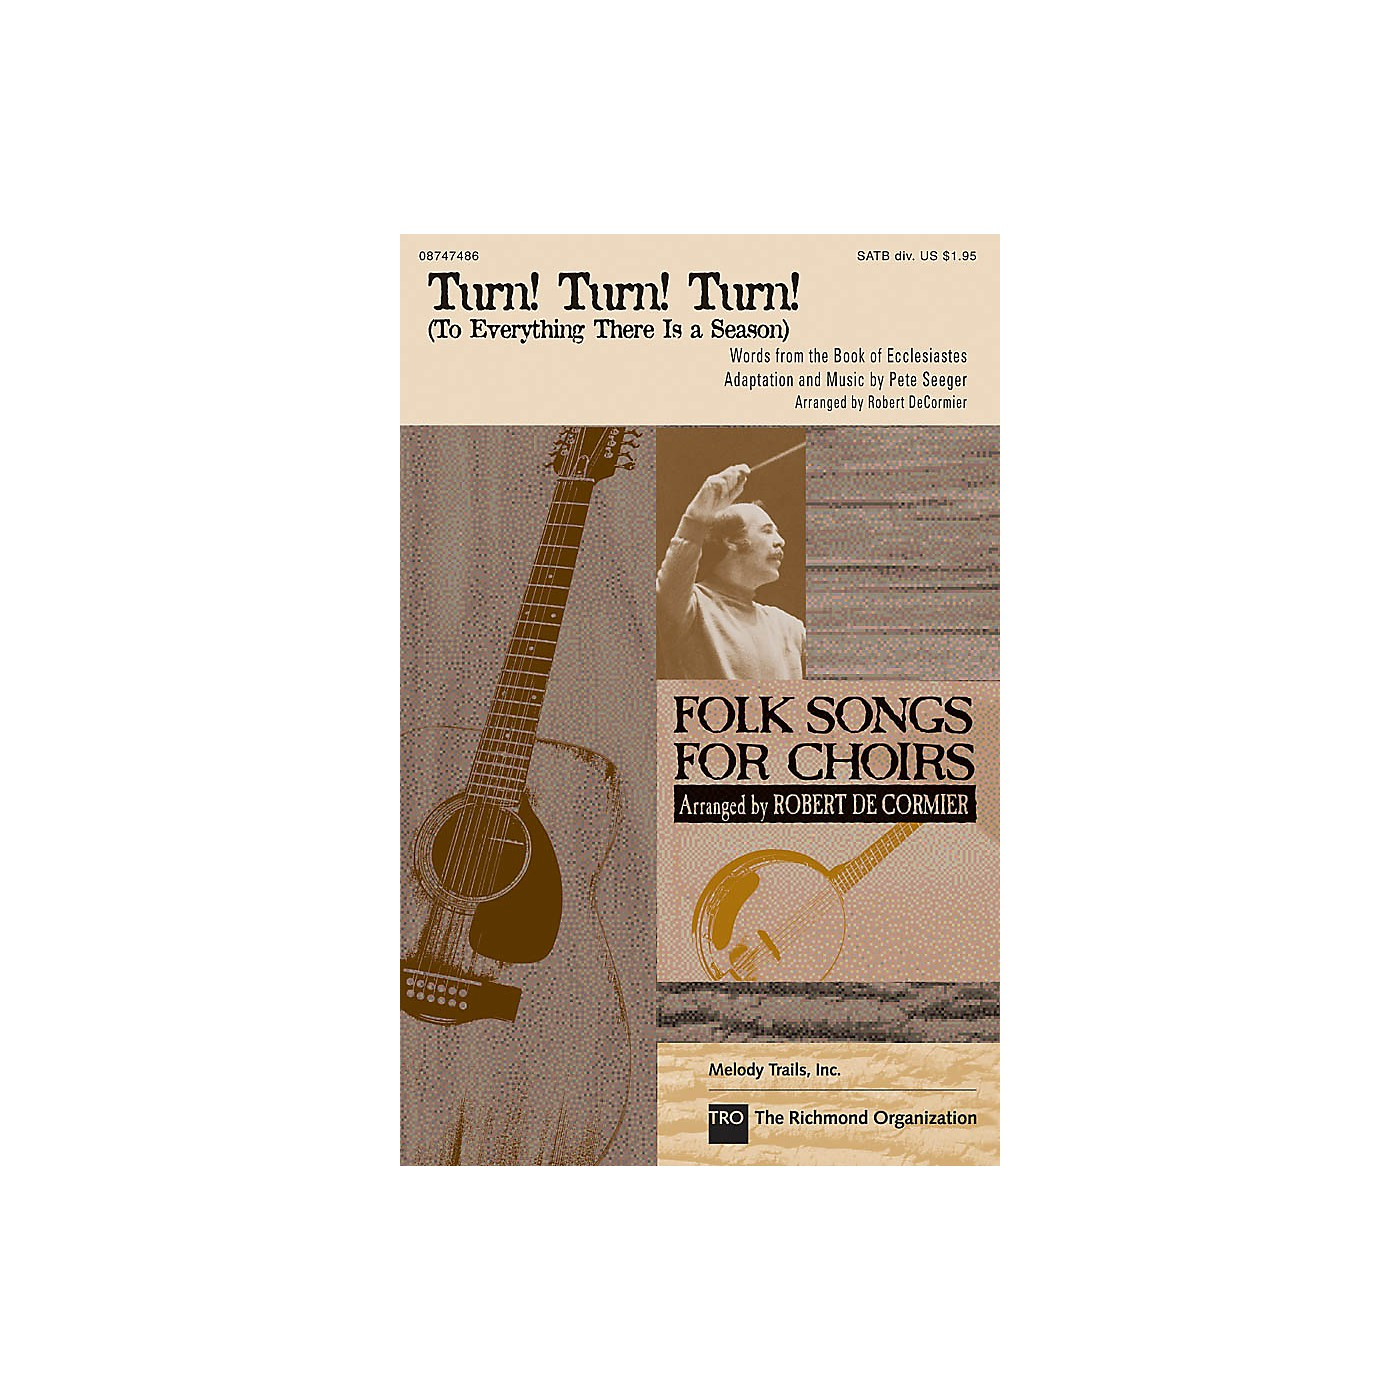 Hal Leonard Turn! Turn! Turn! (To Everything There Is a Season) SATB by The Byrds arranged by Robert DeCormier thumbnail